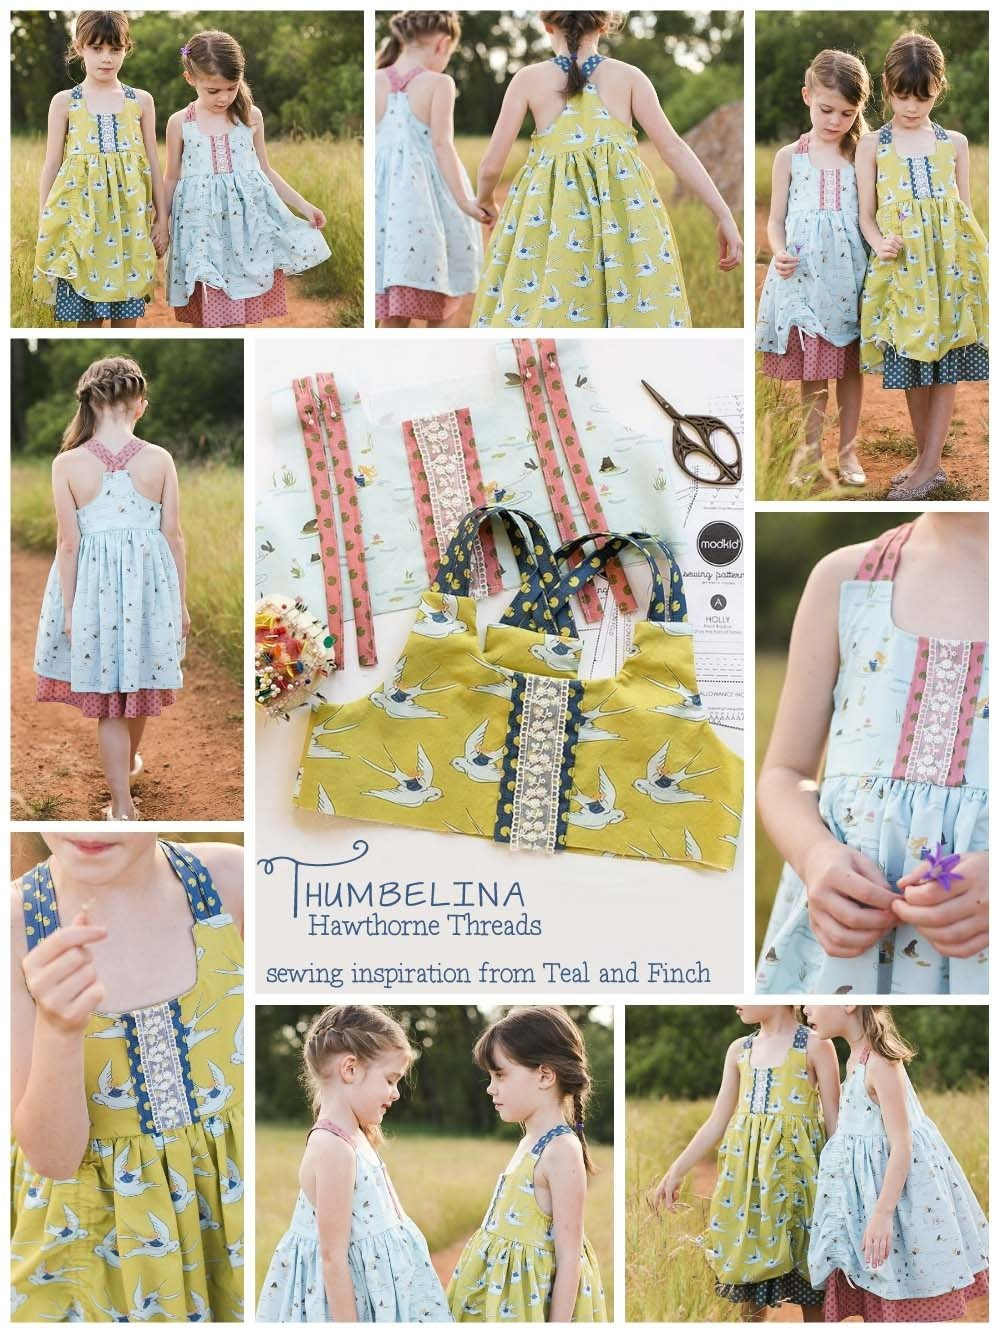 Hawthorne Threads Thumbelina Fabric sewing Inspiration by Teal and Finch b